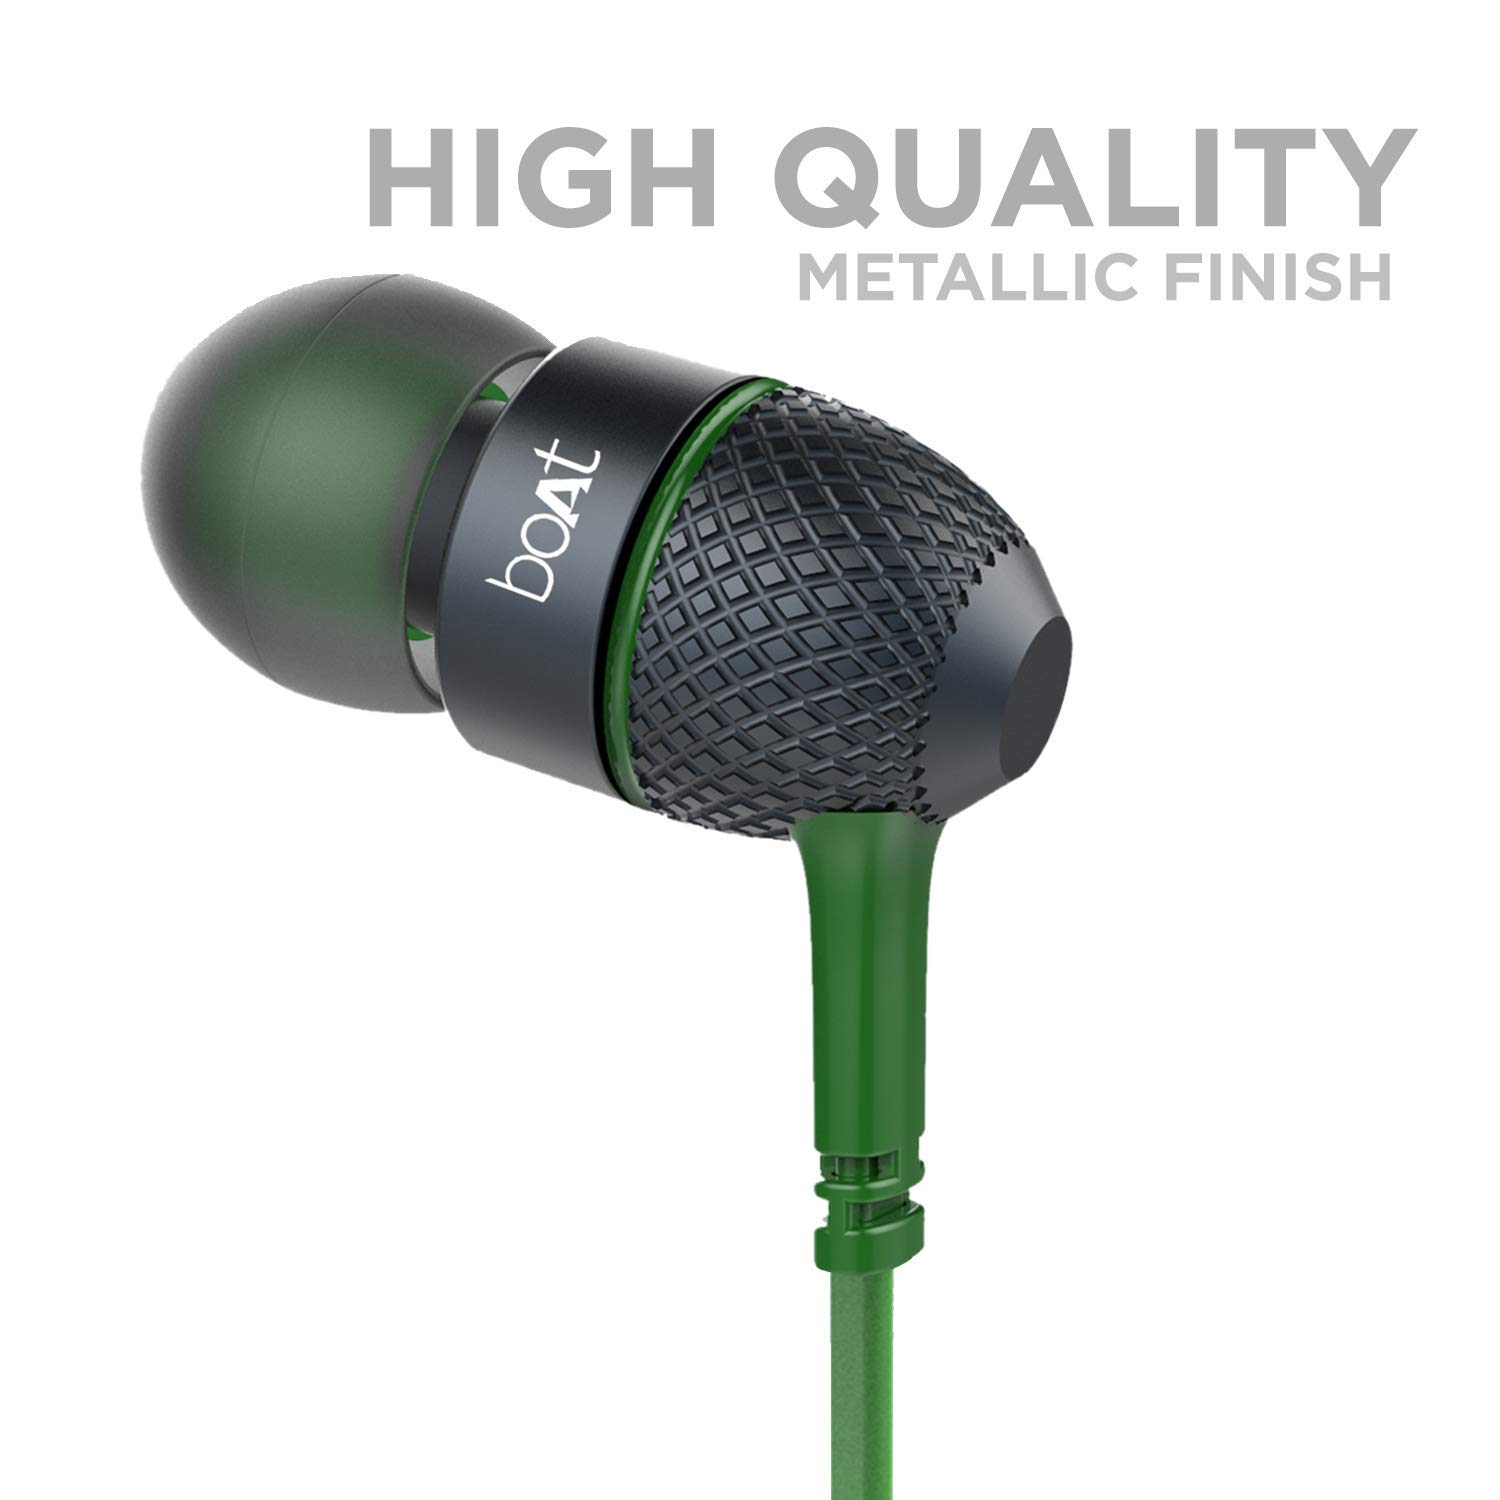 boAt BassHeads 225 in-Ear Wired Earphones with Super Extra Bass, Metallic Finish, Tangle-Free Cable and Gold Plated Angled Jack (Forrest Green)